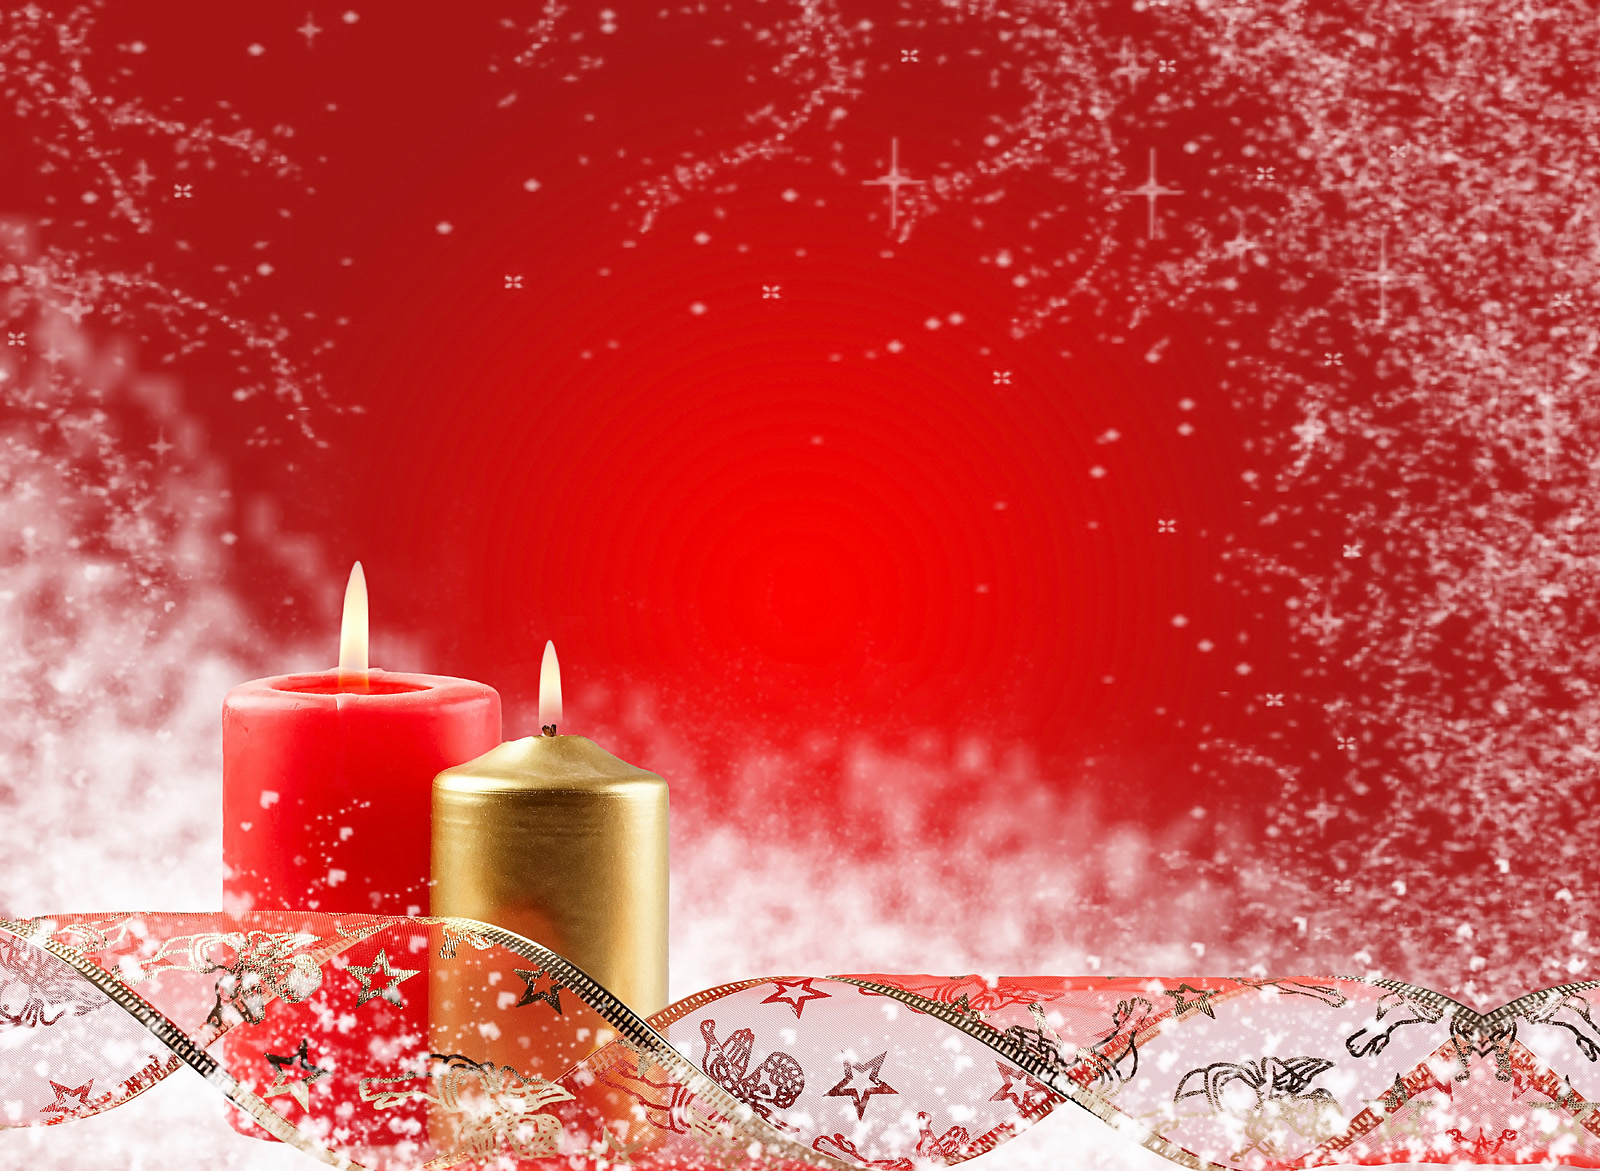 Christmas Backgrounds Backgrounds and Photoshop Patterns